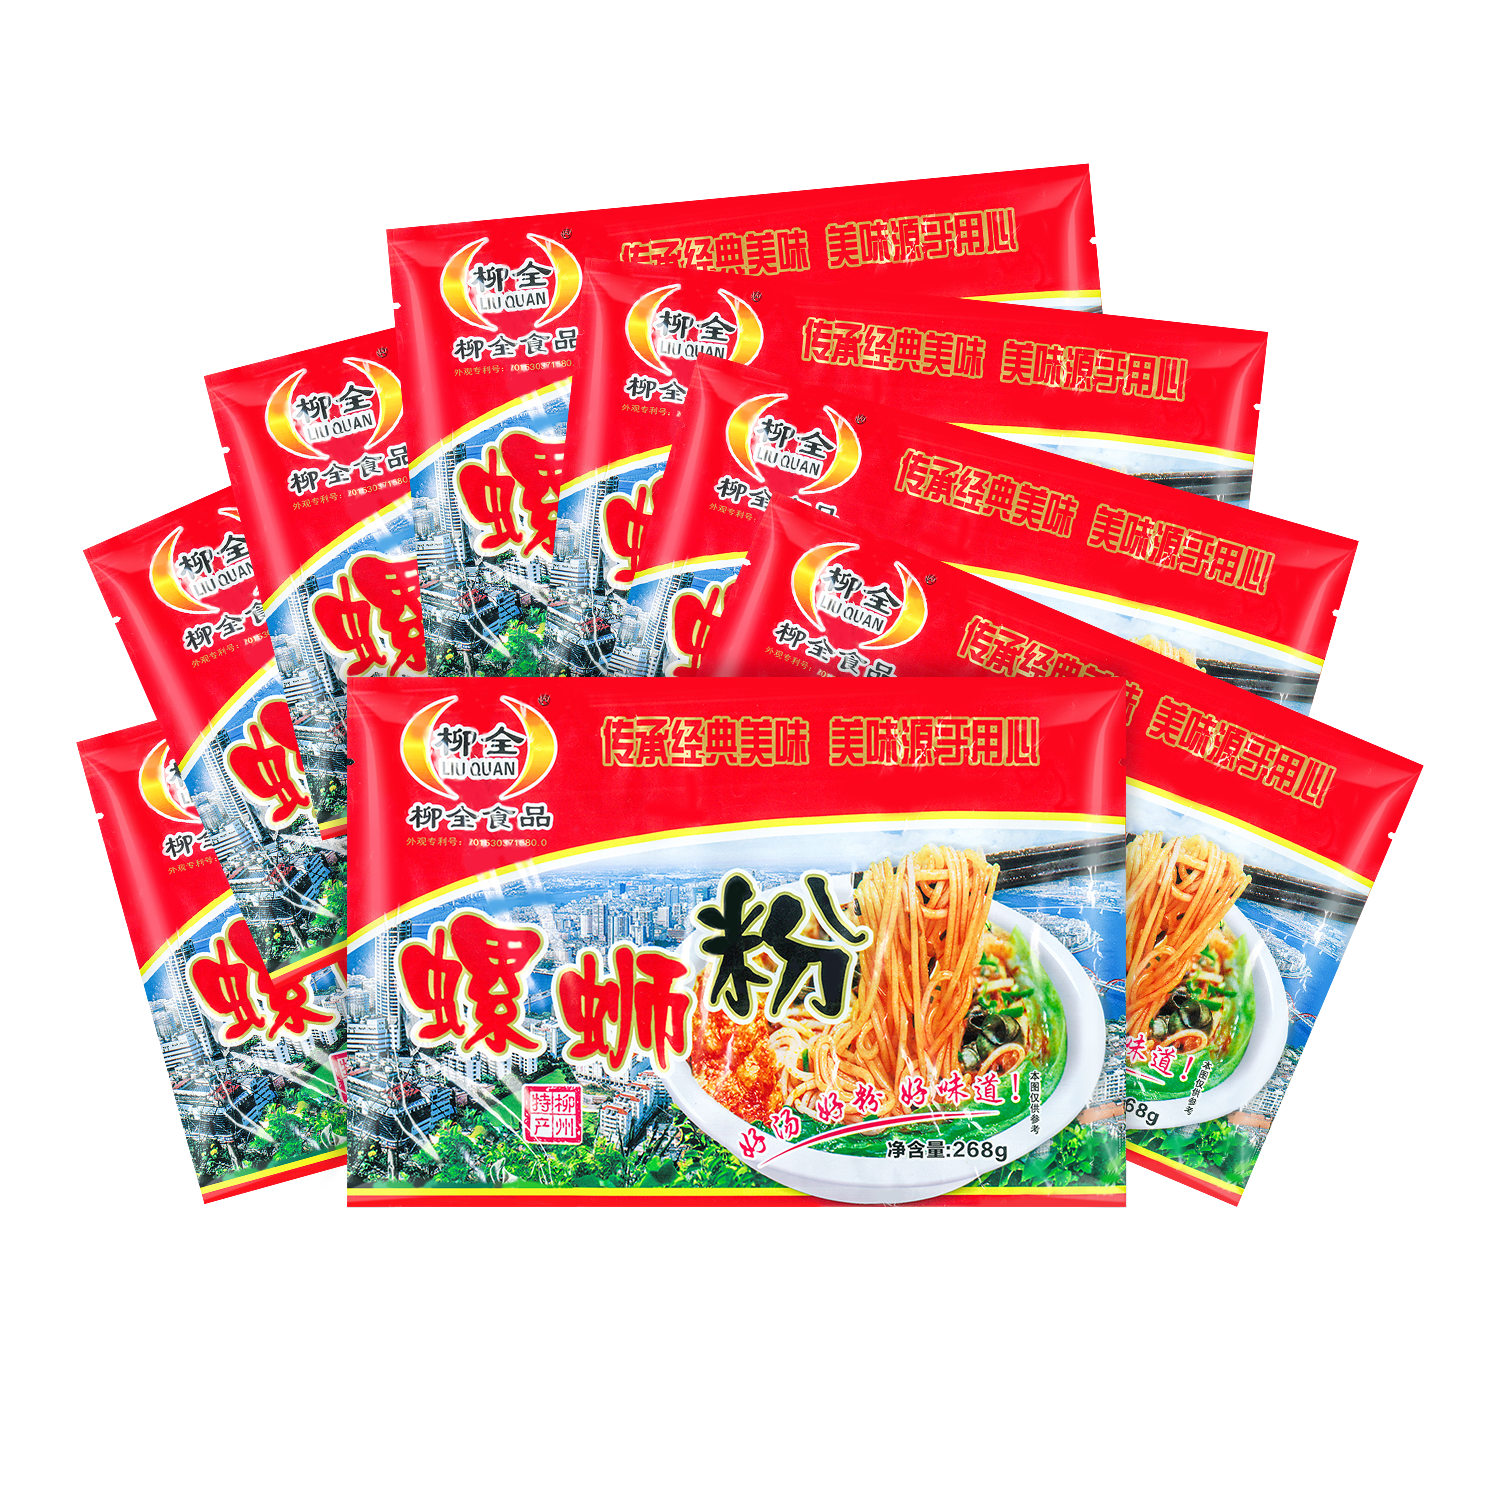 LIUQUAN Instant Spicy Rice Noodle 268g×8